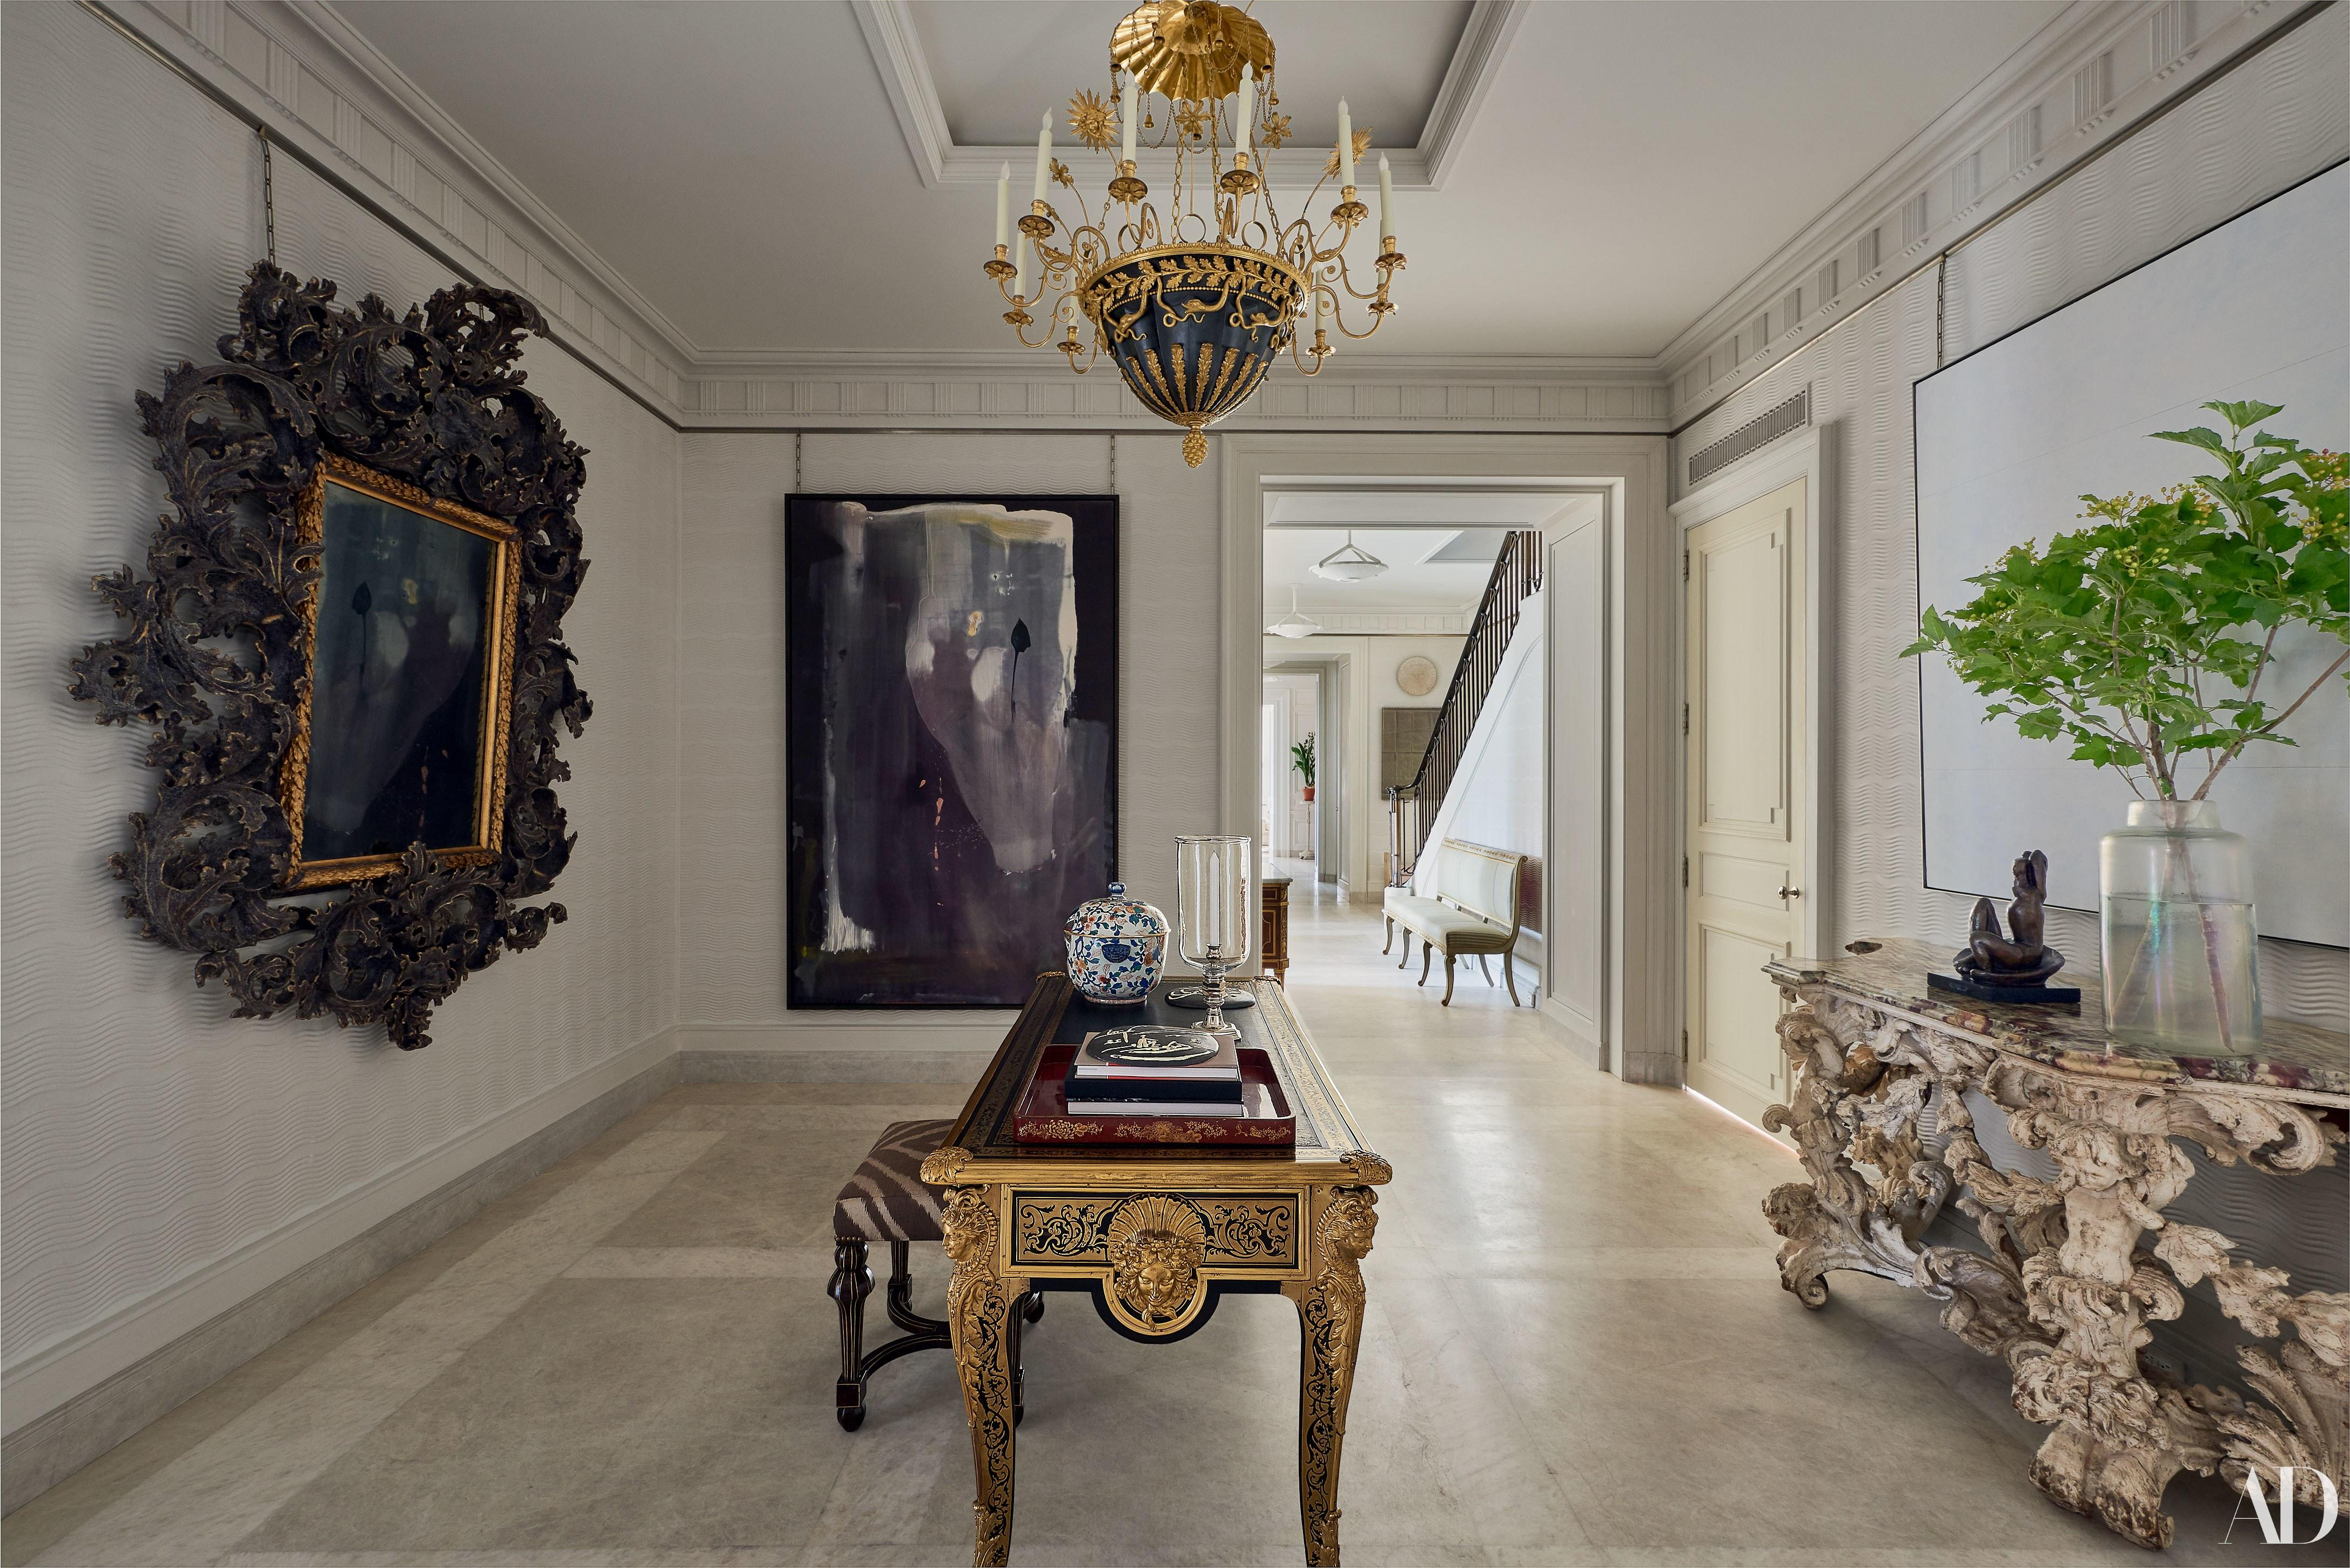 Under the masterful guidance of Michael S. Smith, one of Manhattan's most storied residences gets a glorious new lease on life